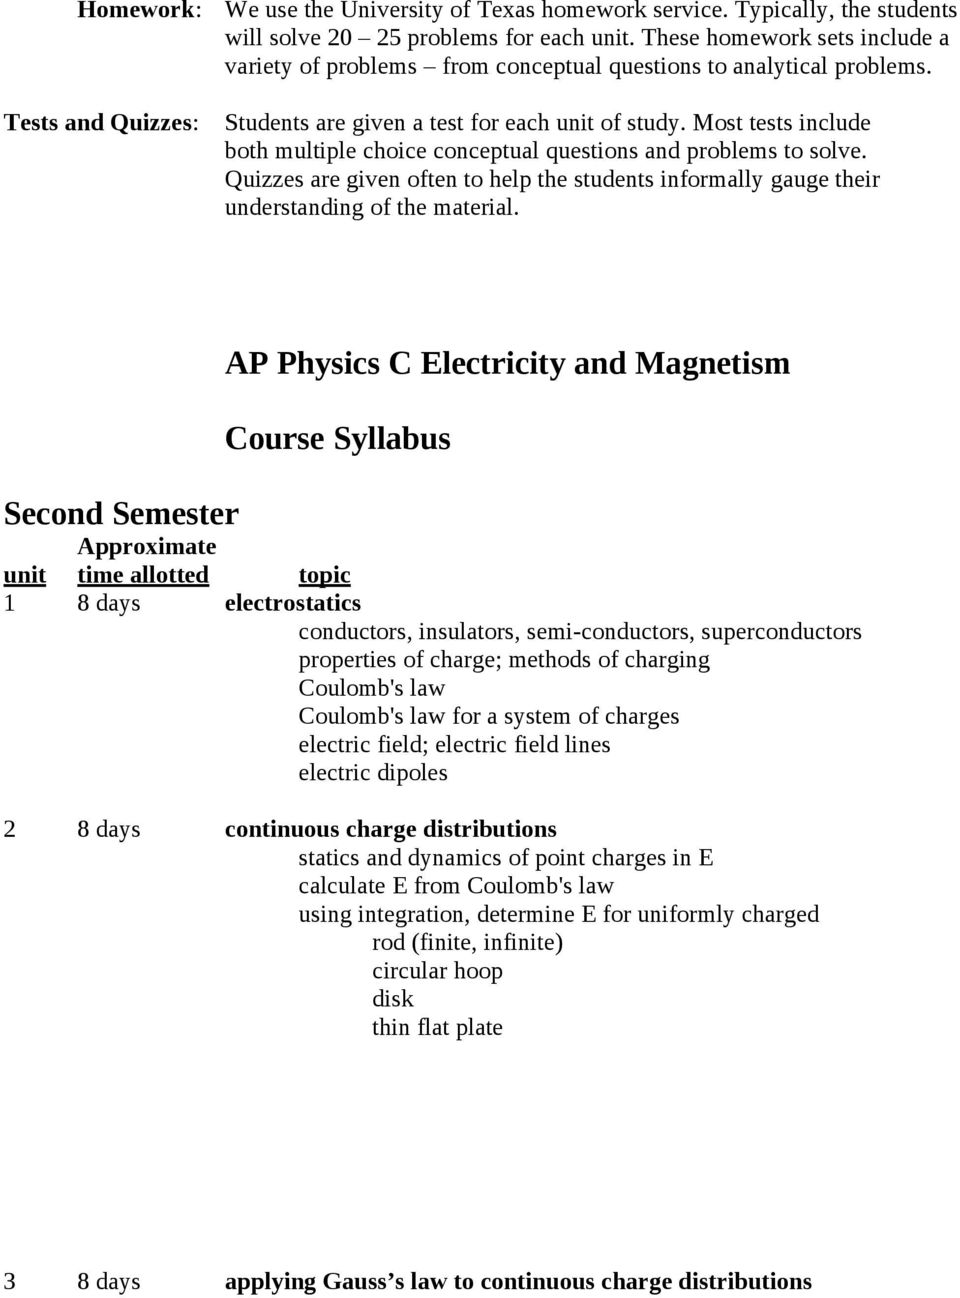 Course Syllabus: AP Physics C Electricity and Magnetism - PDF